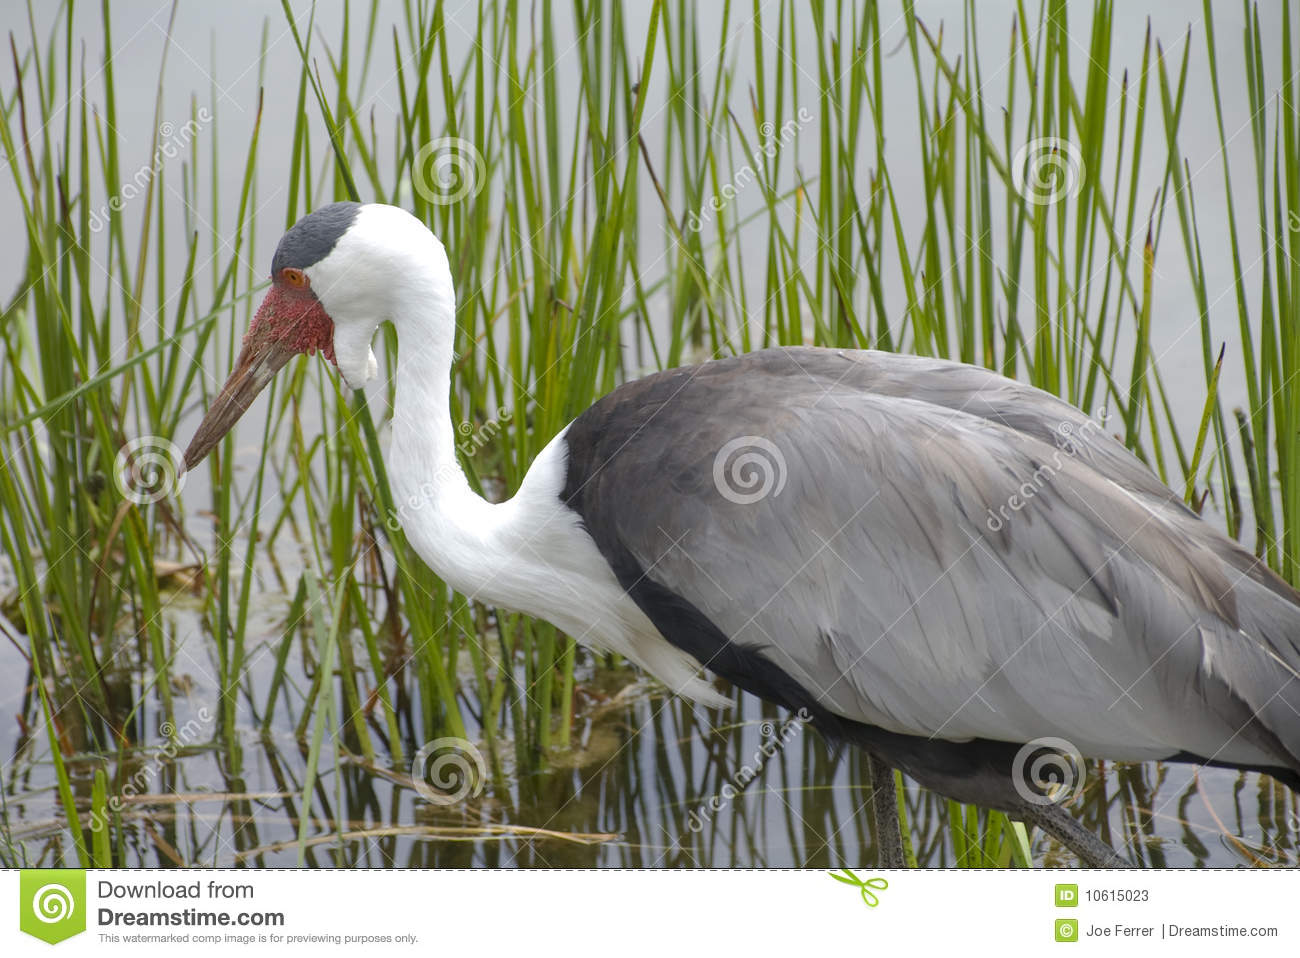 Wattled Crane in Natural Wetlands Habitat